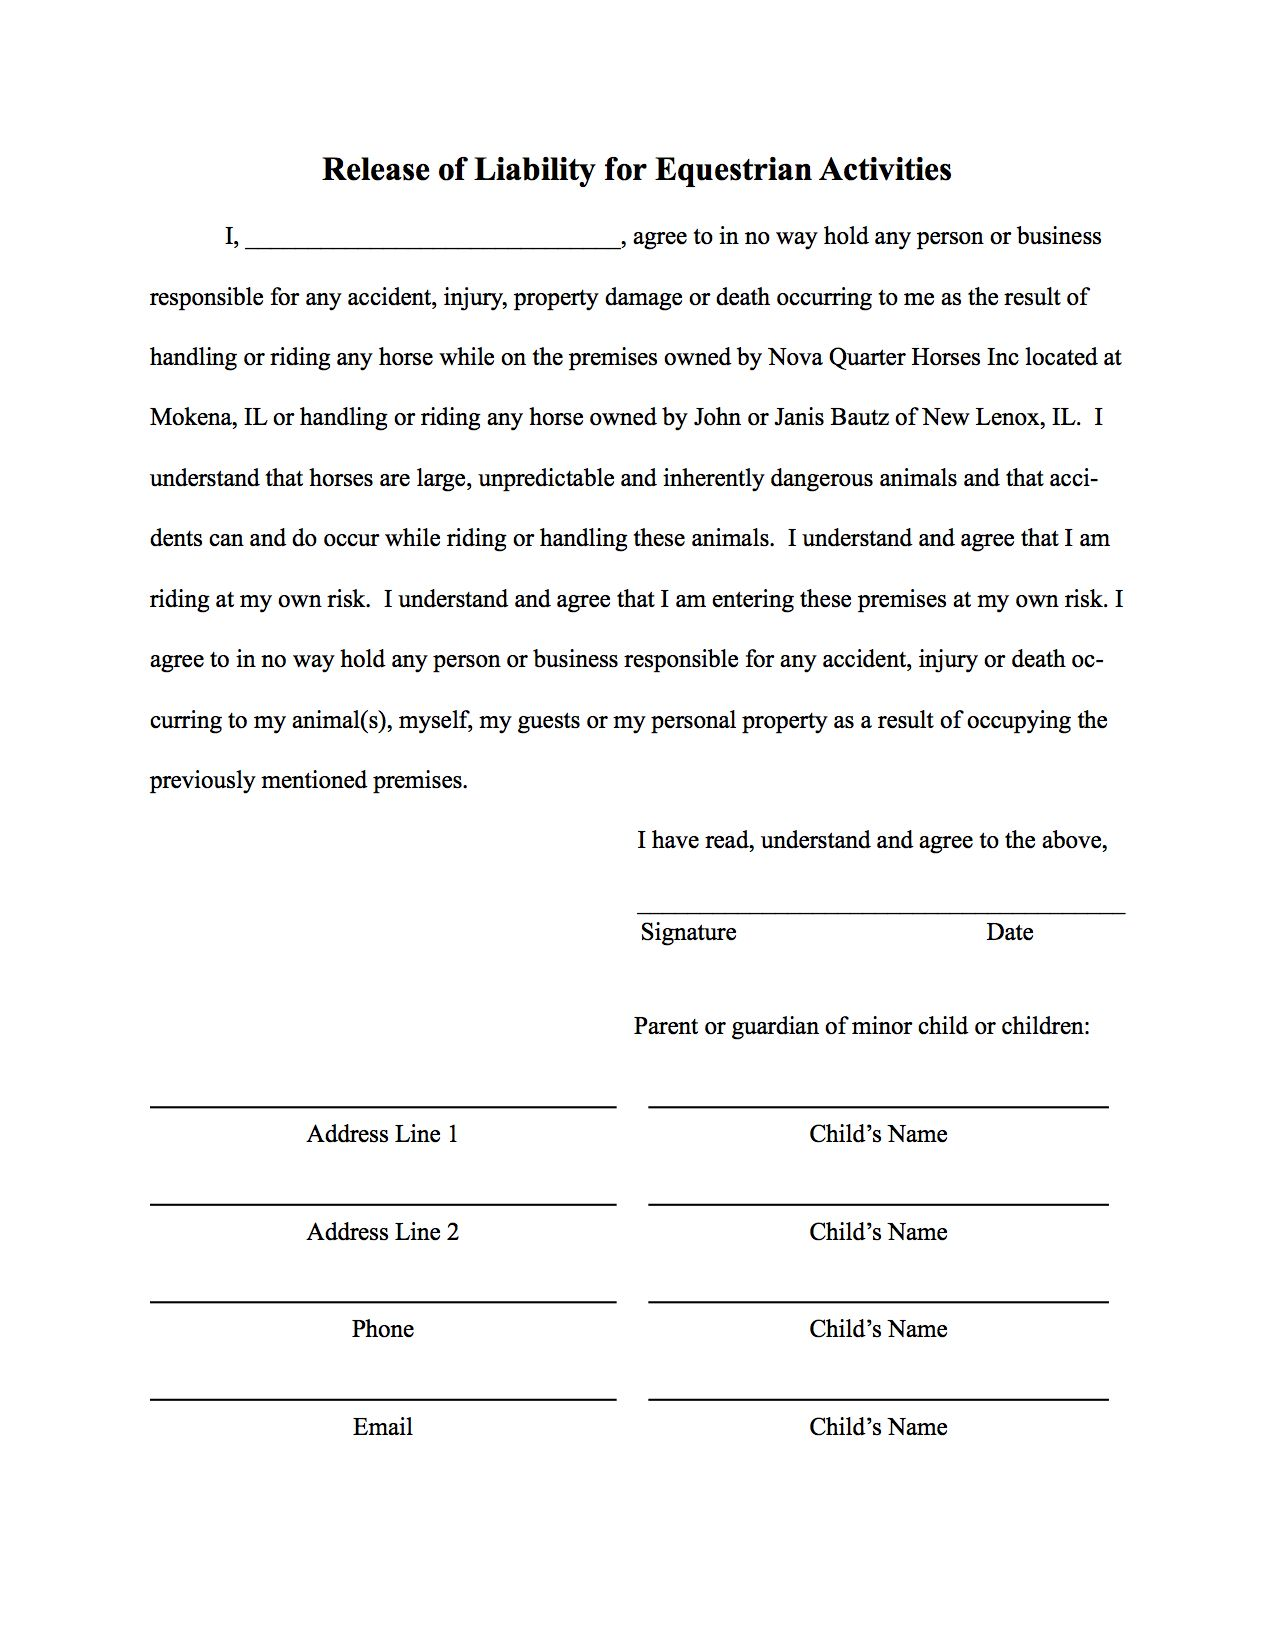 Attractive Liability Waiver Form Template Release Of Liability Form Waiver Of Liability  Template With Sample, Liability Waiver Template Free Word Templates  Liability, ... Idea Generic Liability Waiver And Release Form